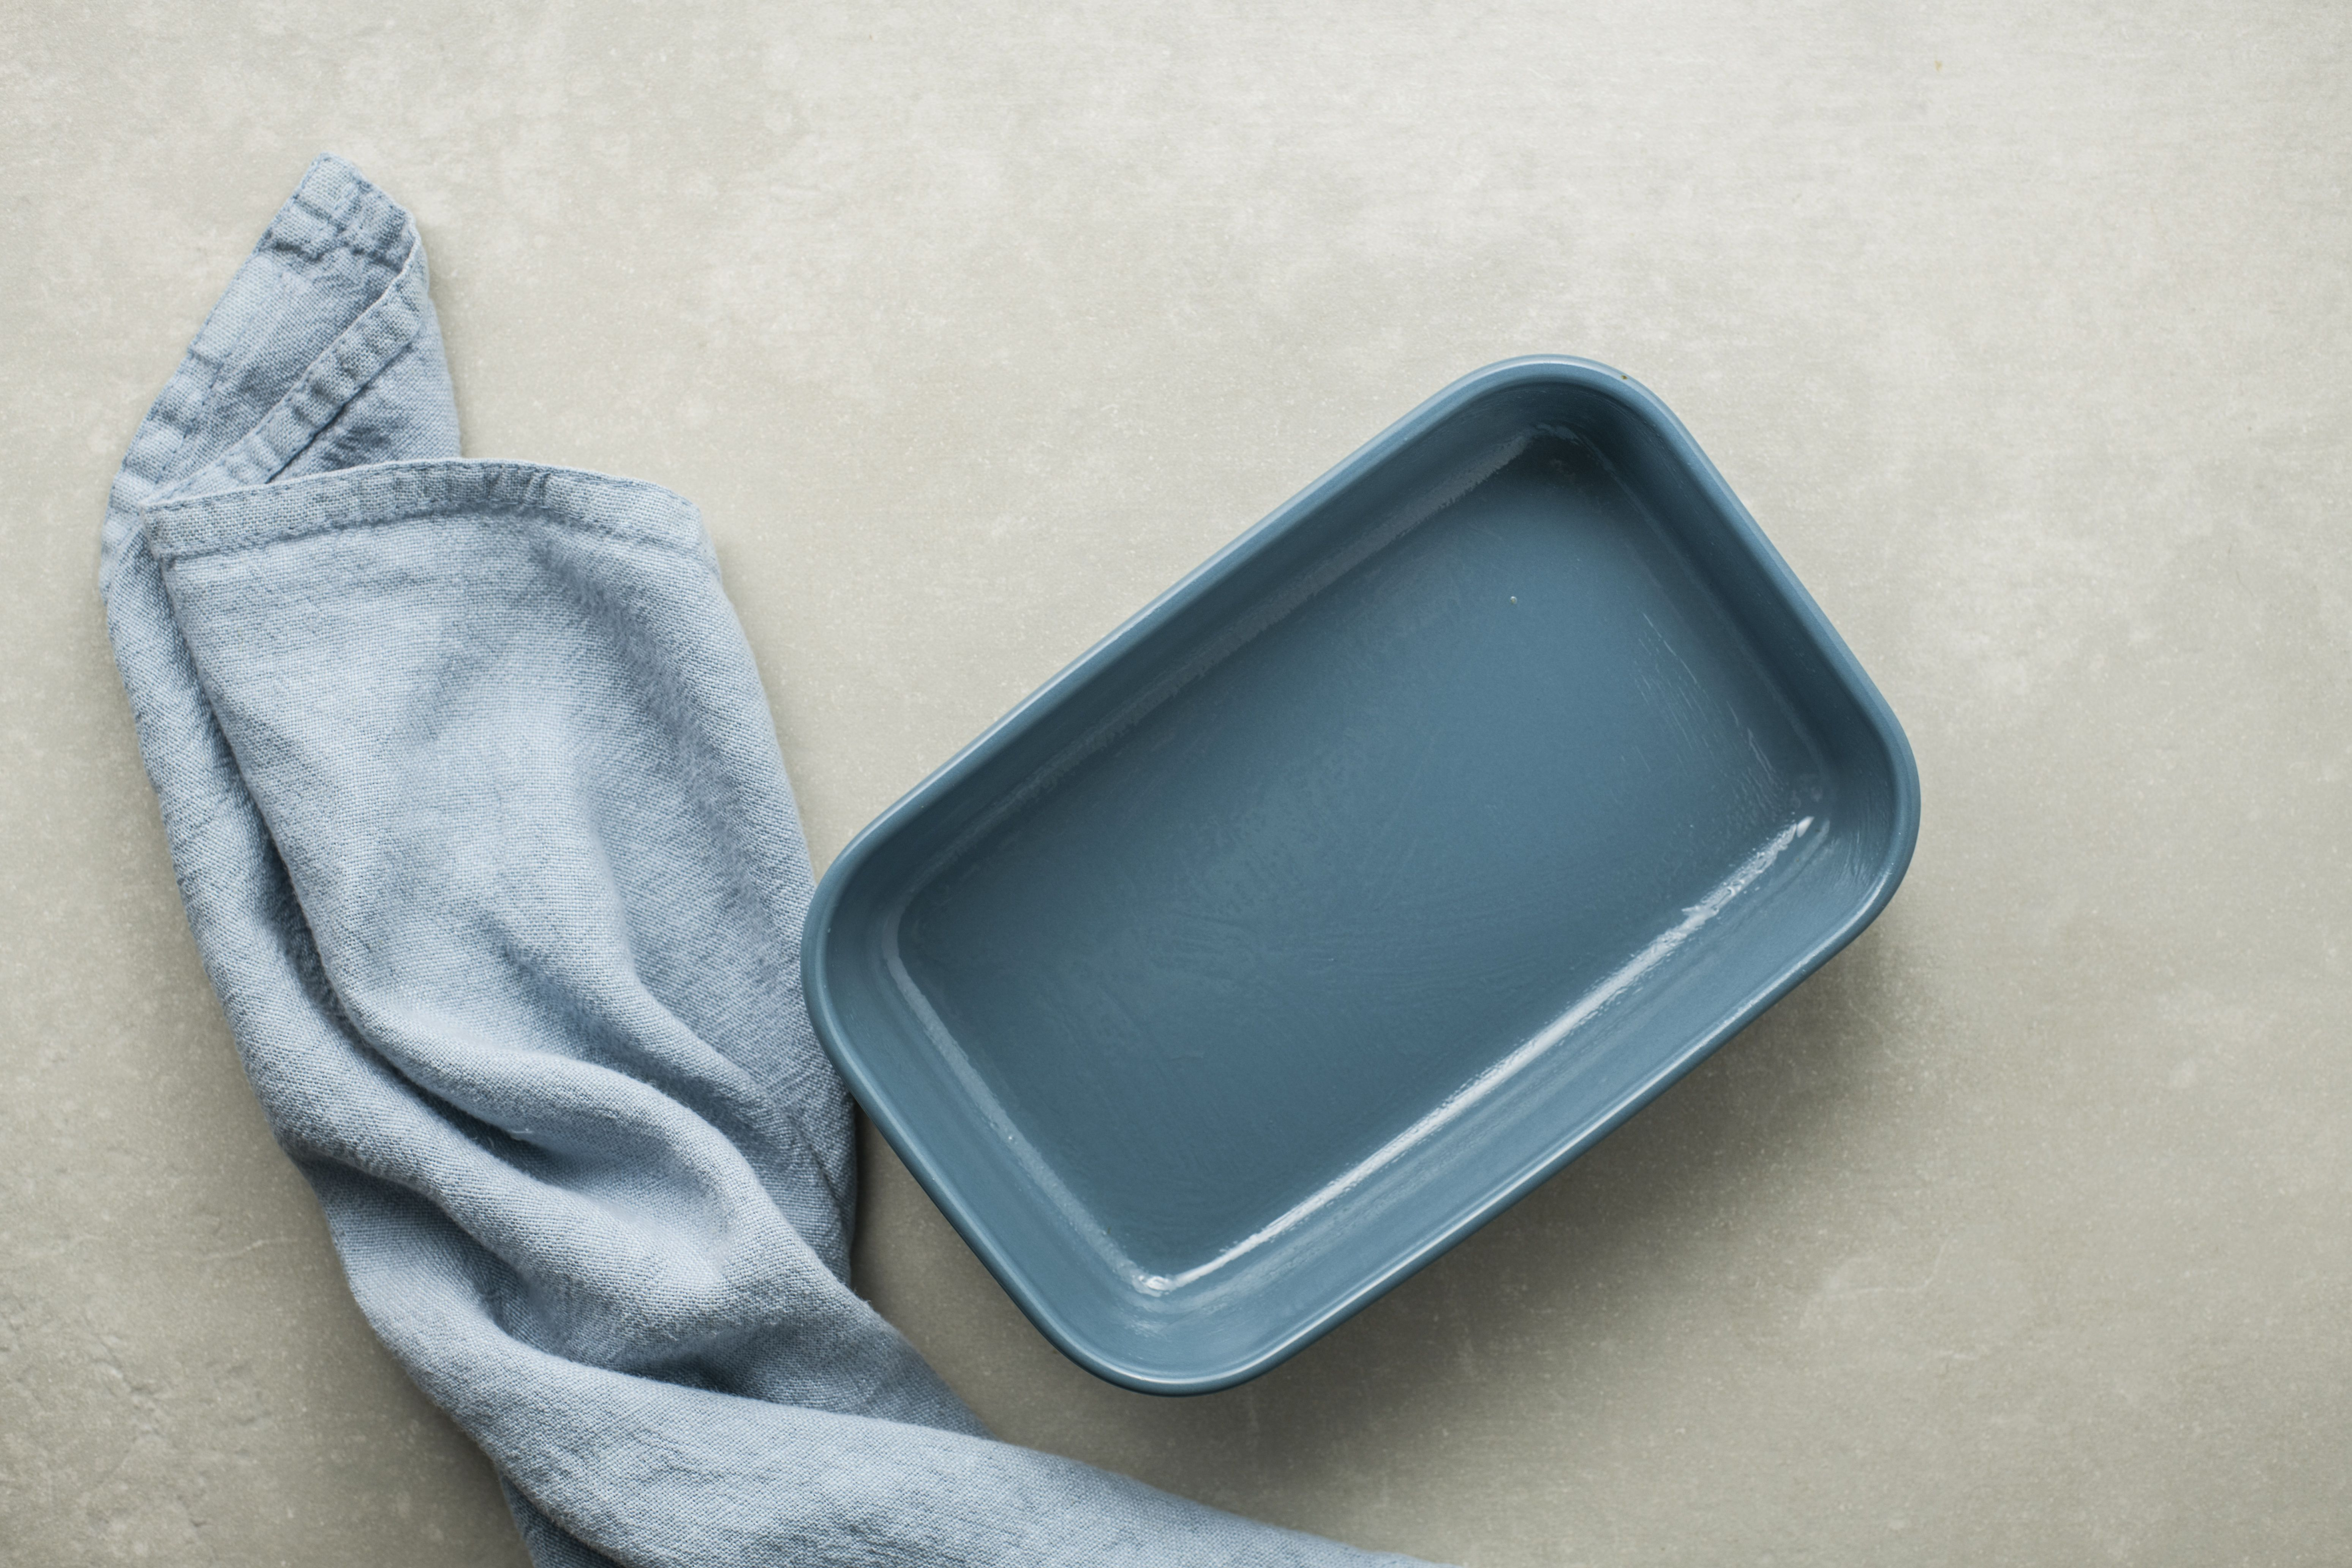 A blue casserole dish on a table